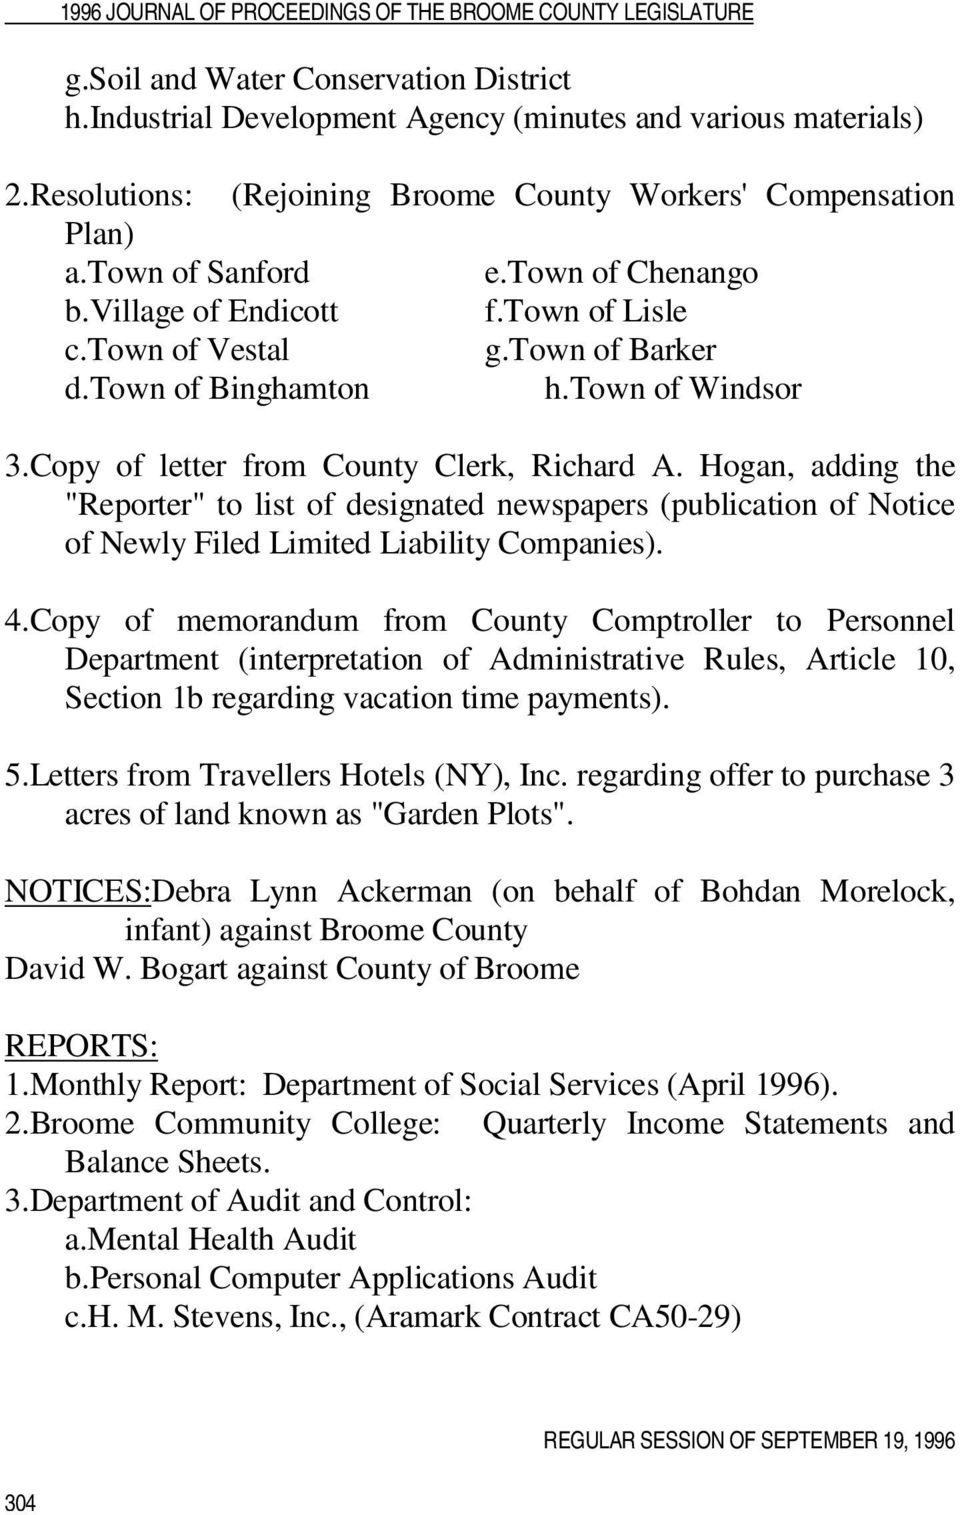 "Hogan, adding the ""Reporter"" to list of designated newspapers (publication of Notice of Newly Filed Limited Liability Companies). 4."